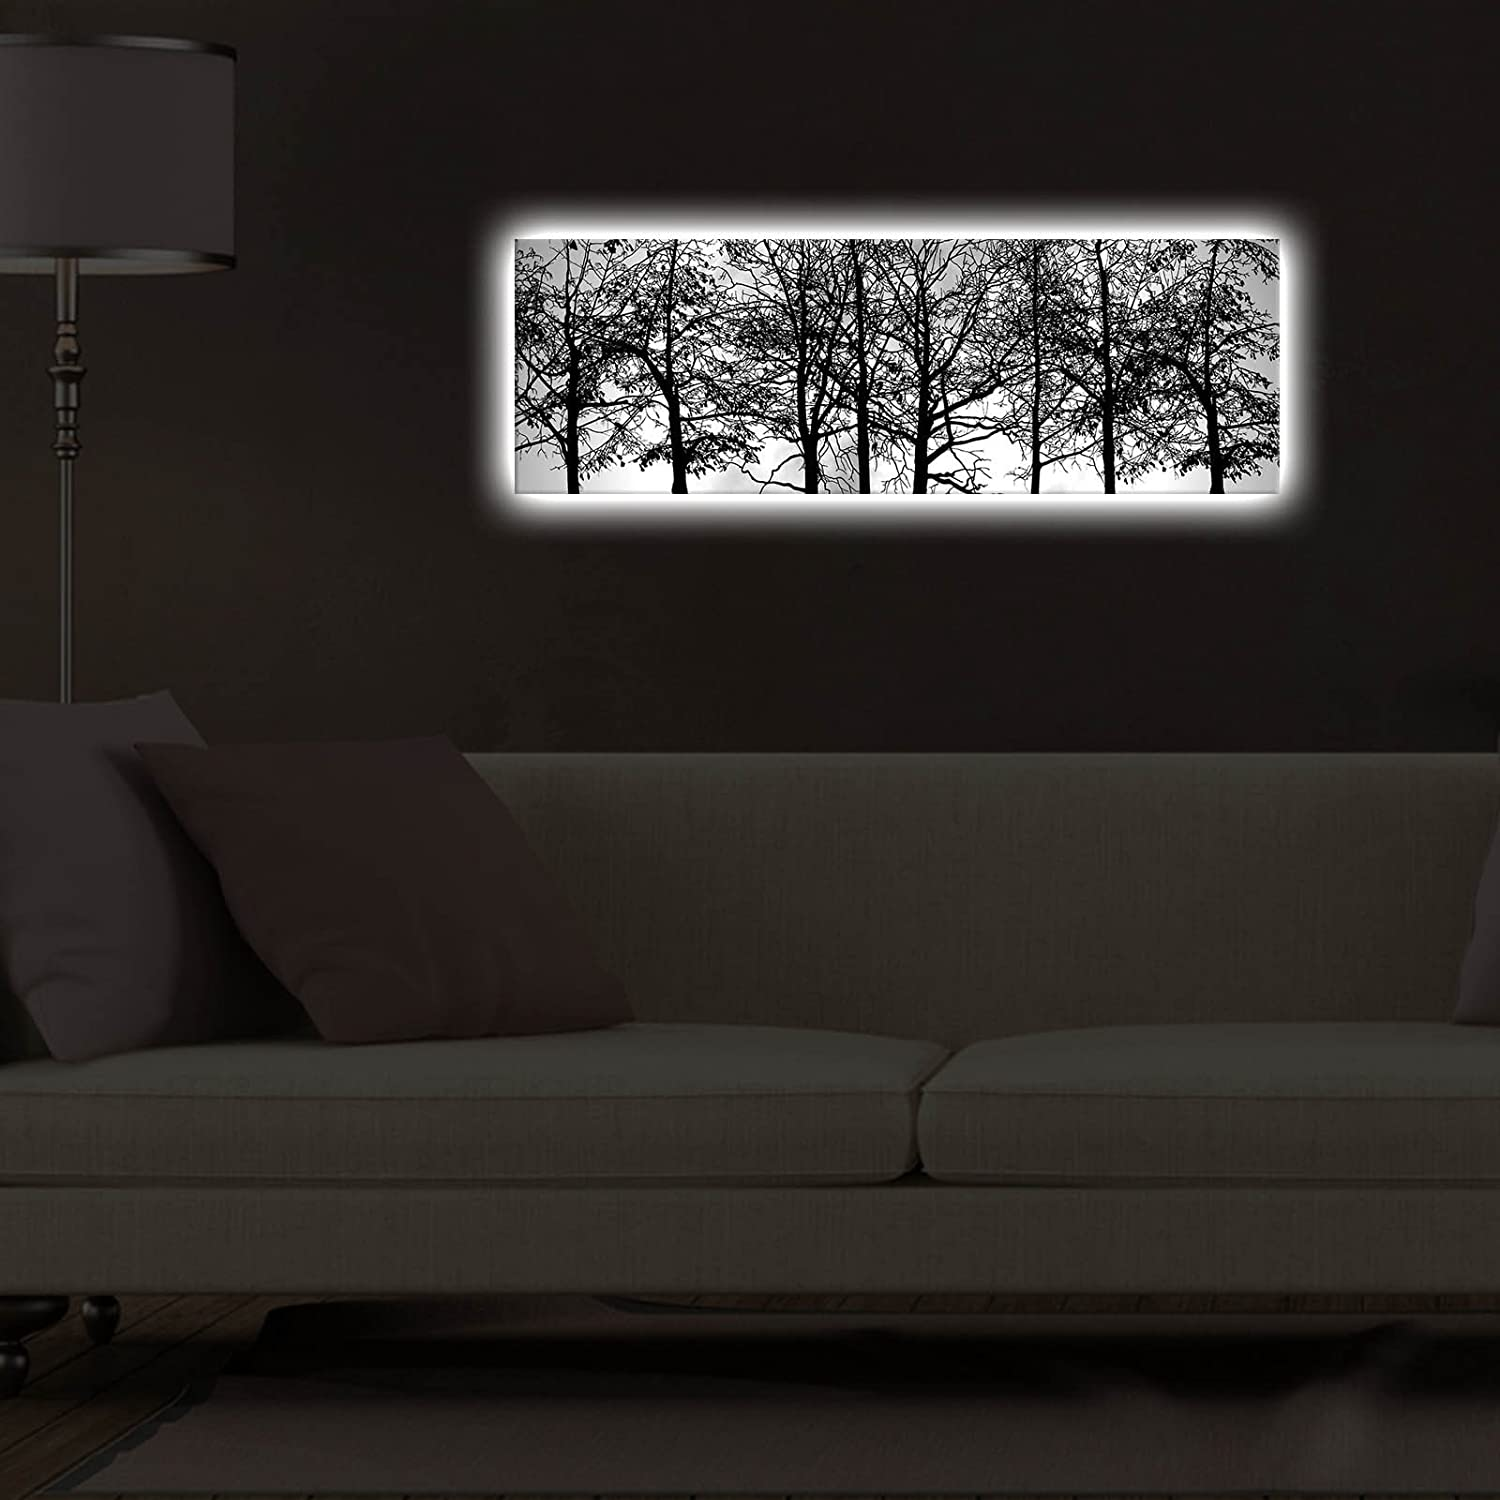 Wooden Thick Frame Painting Thin Trees and Branches - Battery Operated Forest White Led Lighted Canvas Wall Art Dorm LaModaHome 254LED3270 Wall Hanging for Living Room Size Black 11.5 x 35 Bedroom